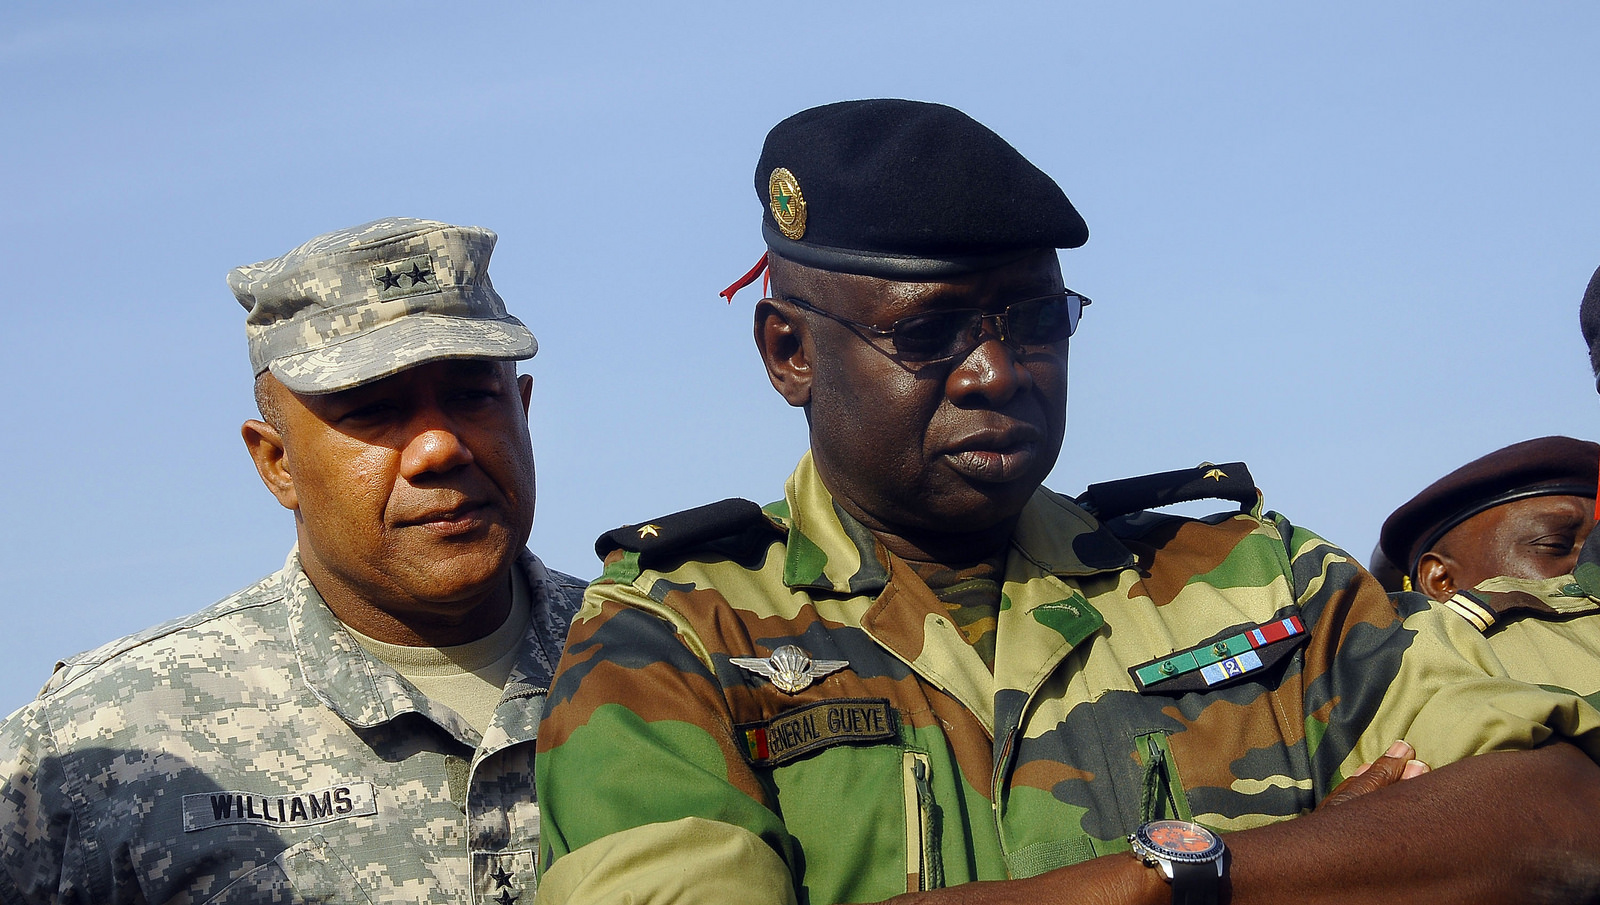 Maj. Gen. Darryl A. Williams (left), U.S. Army Africa commander, and Brig. Gen. Cheikh Gueye, chief of Senegal Army Staff, watch Senegalese Armed Forces soldiers participate in a demonstration at a live fire range near Thies, Senegal, during the African Land Forces Summit, held in Dakar, Senegal, Feb. 9-12. (U.S. Army Africa photo by Pfc. Criag Philbrick)